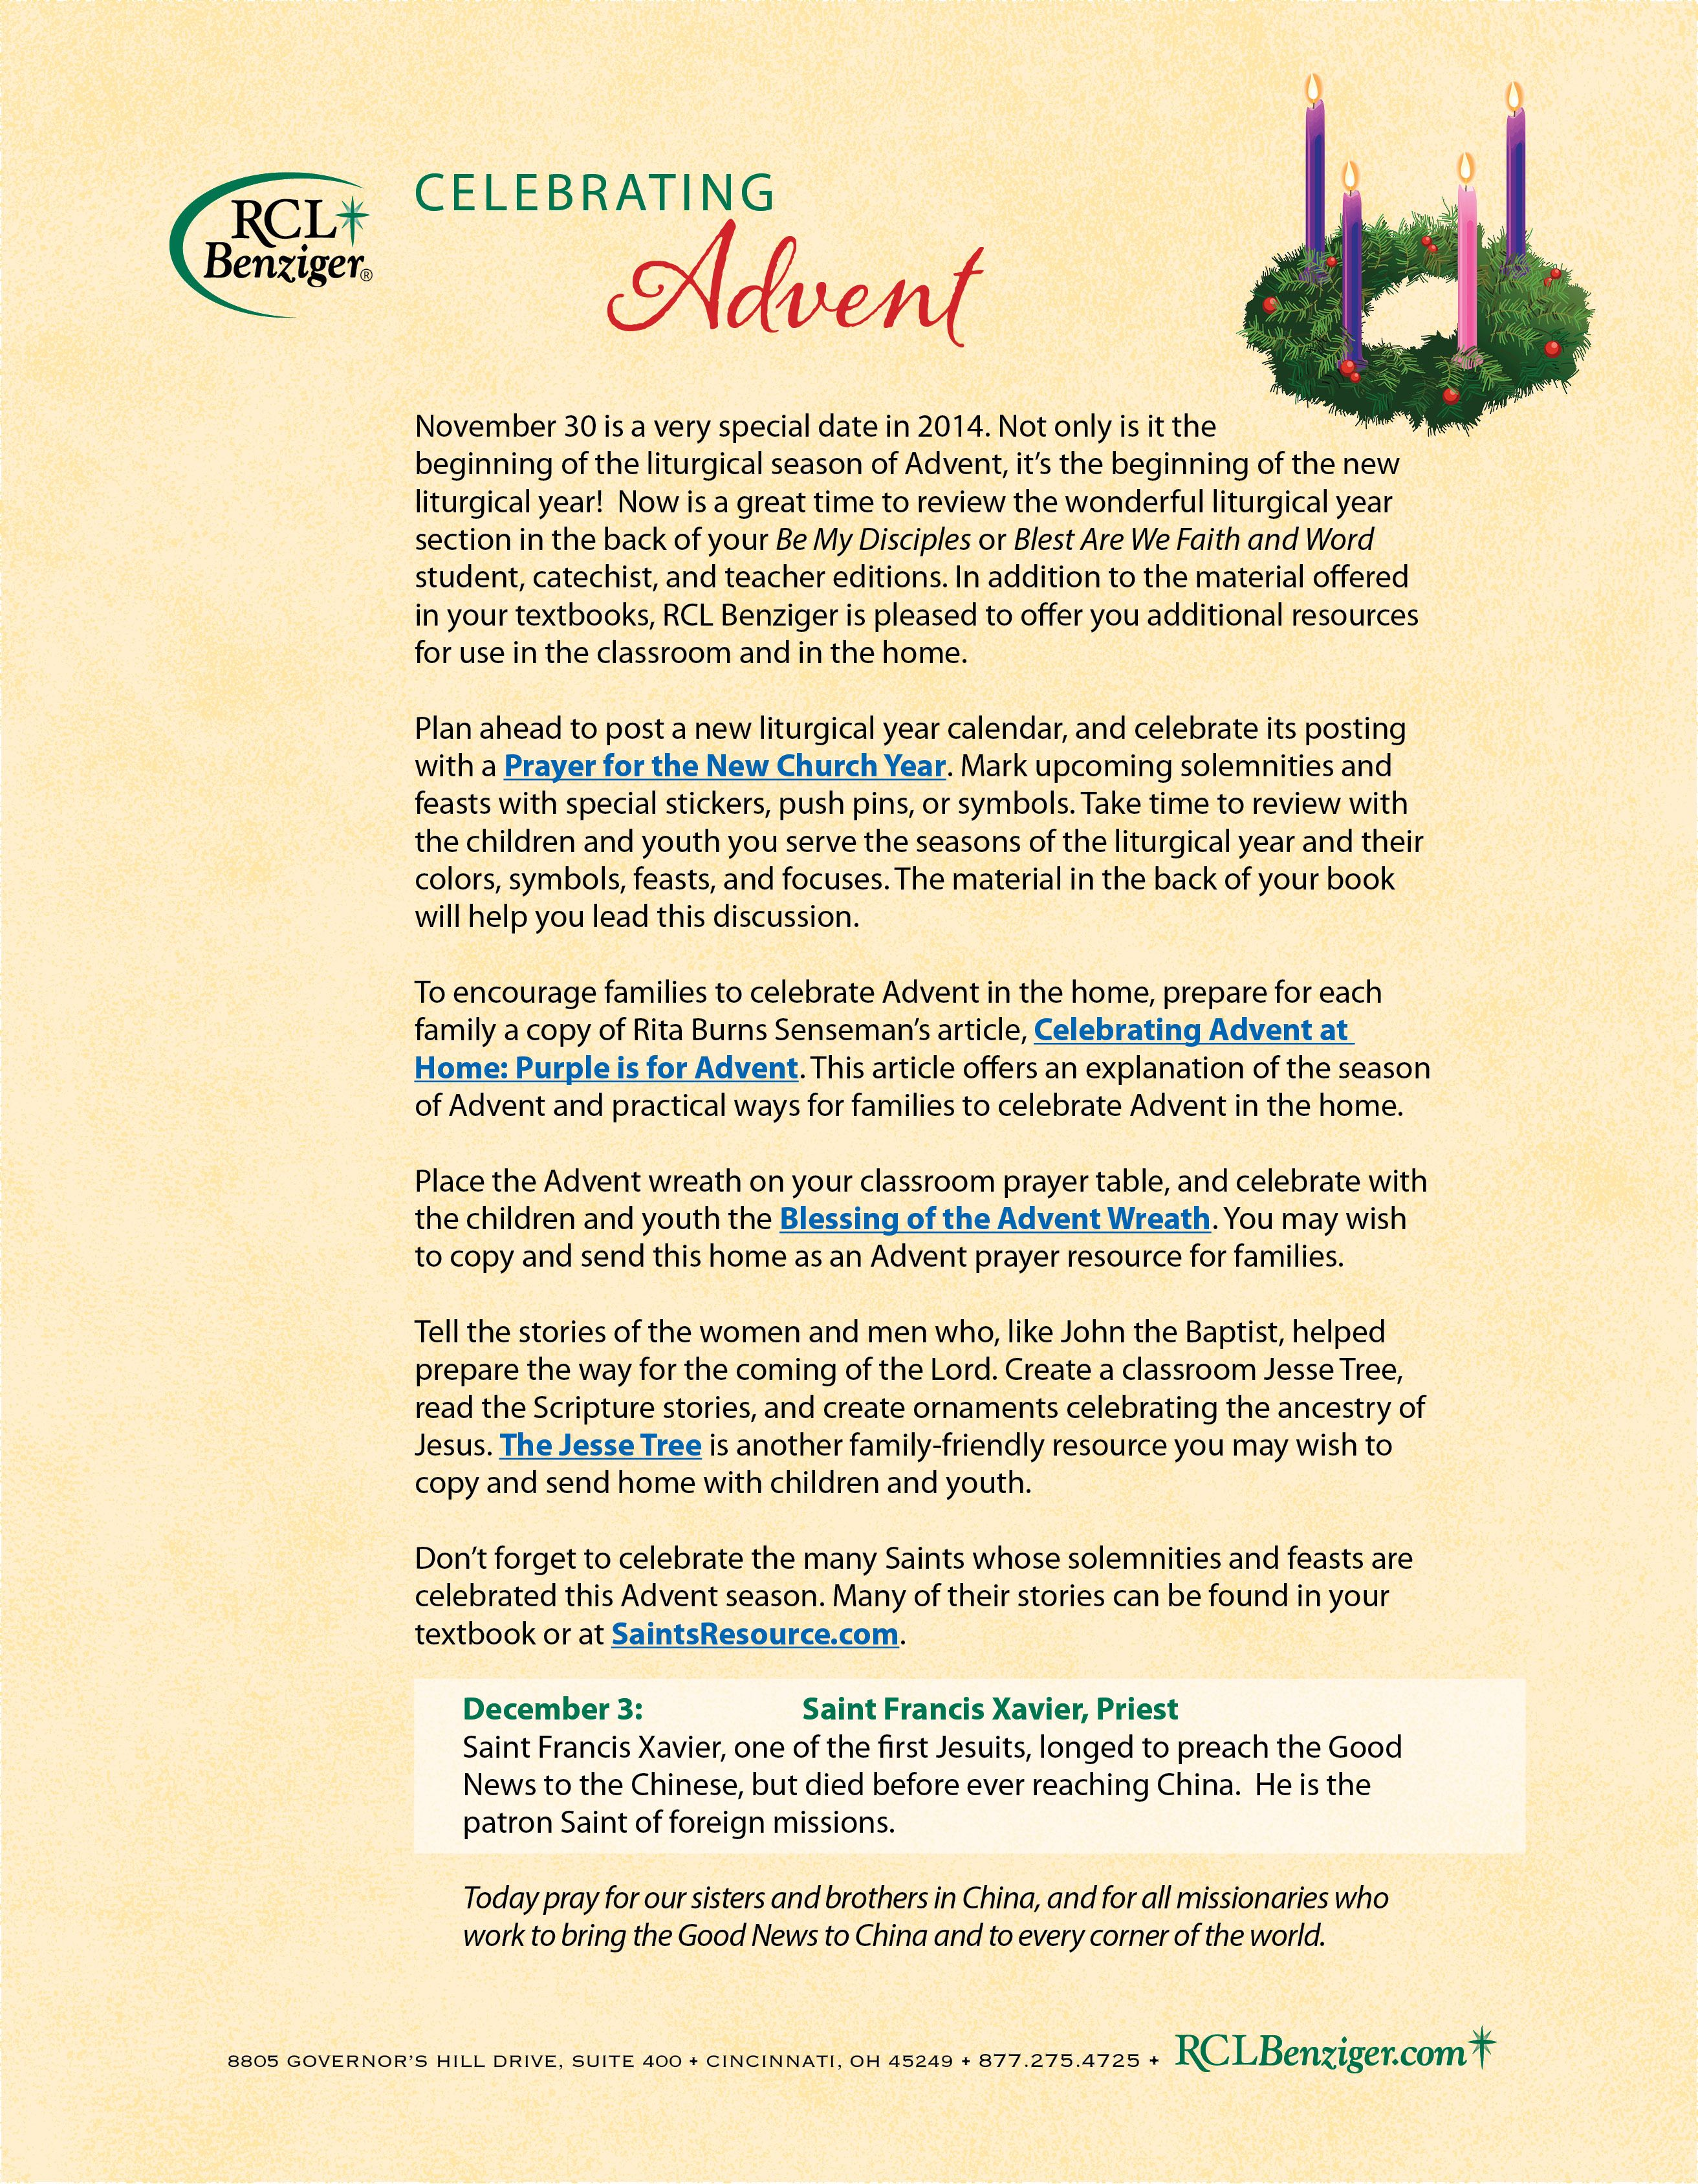 The advent season rcl benziger ideas for teachers and catechists the advent season rcl benziger ideas for teachers and catechists downloadable handouts buycottarizona Image collections